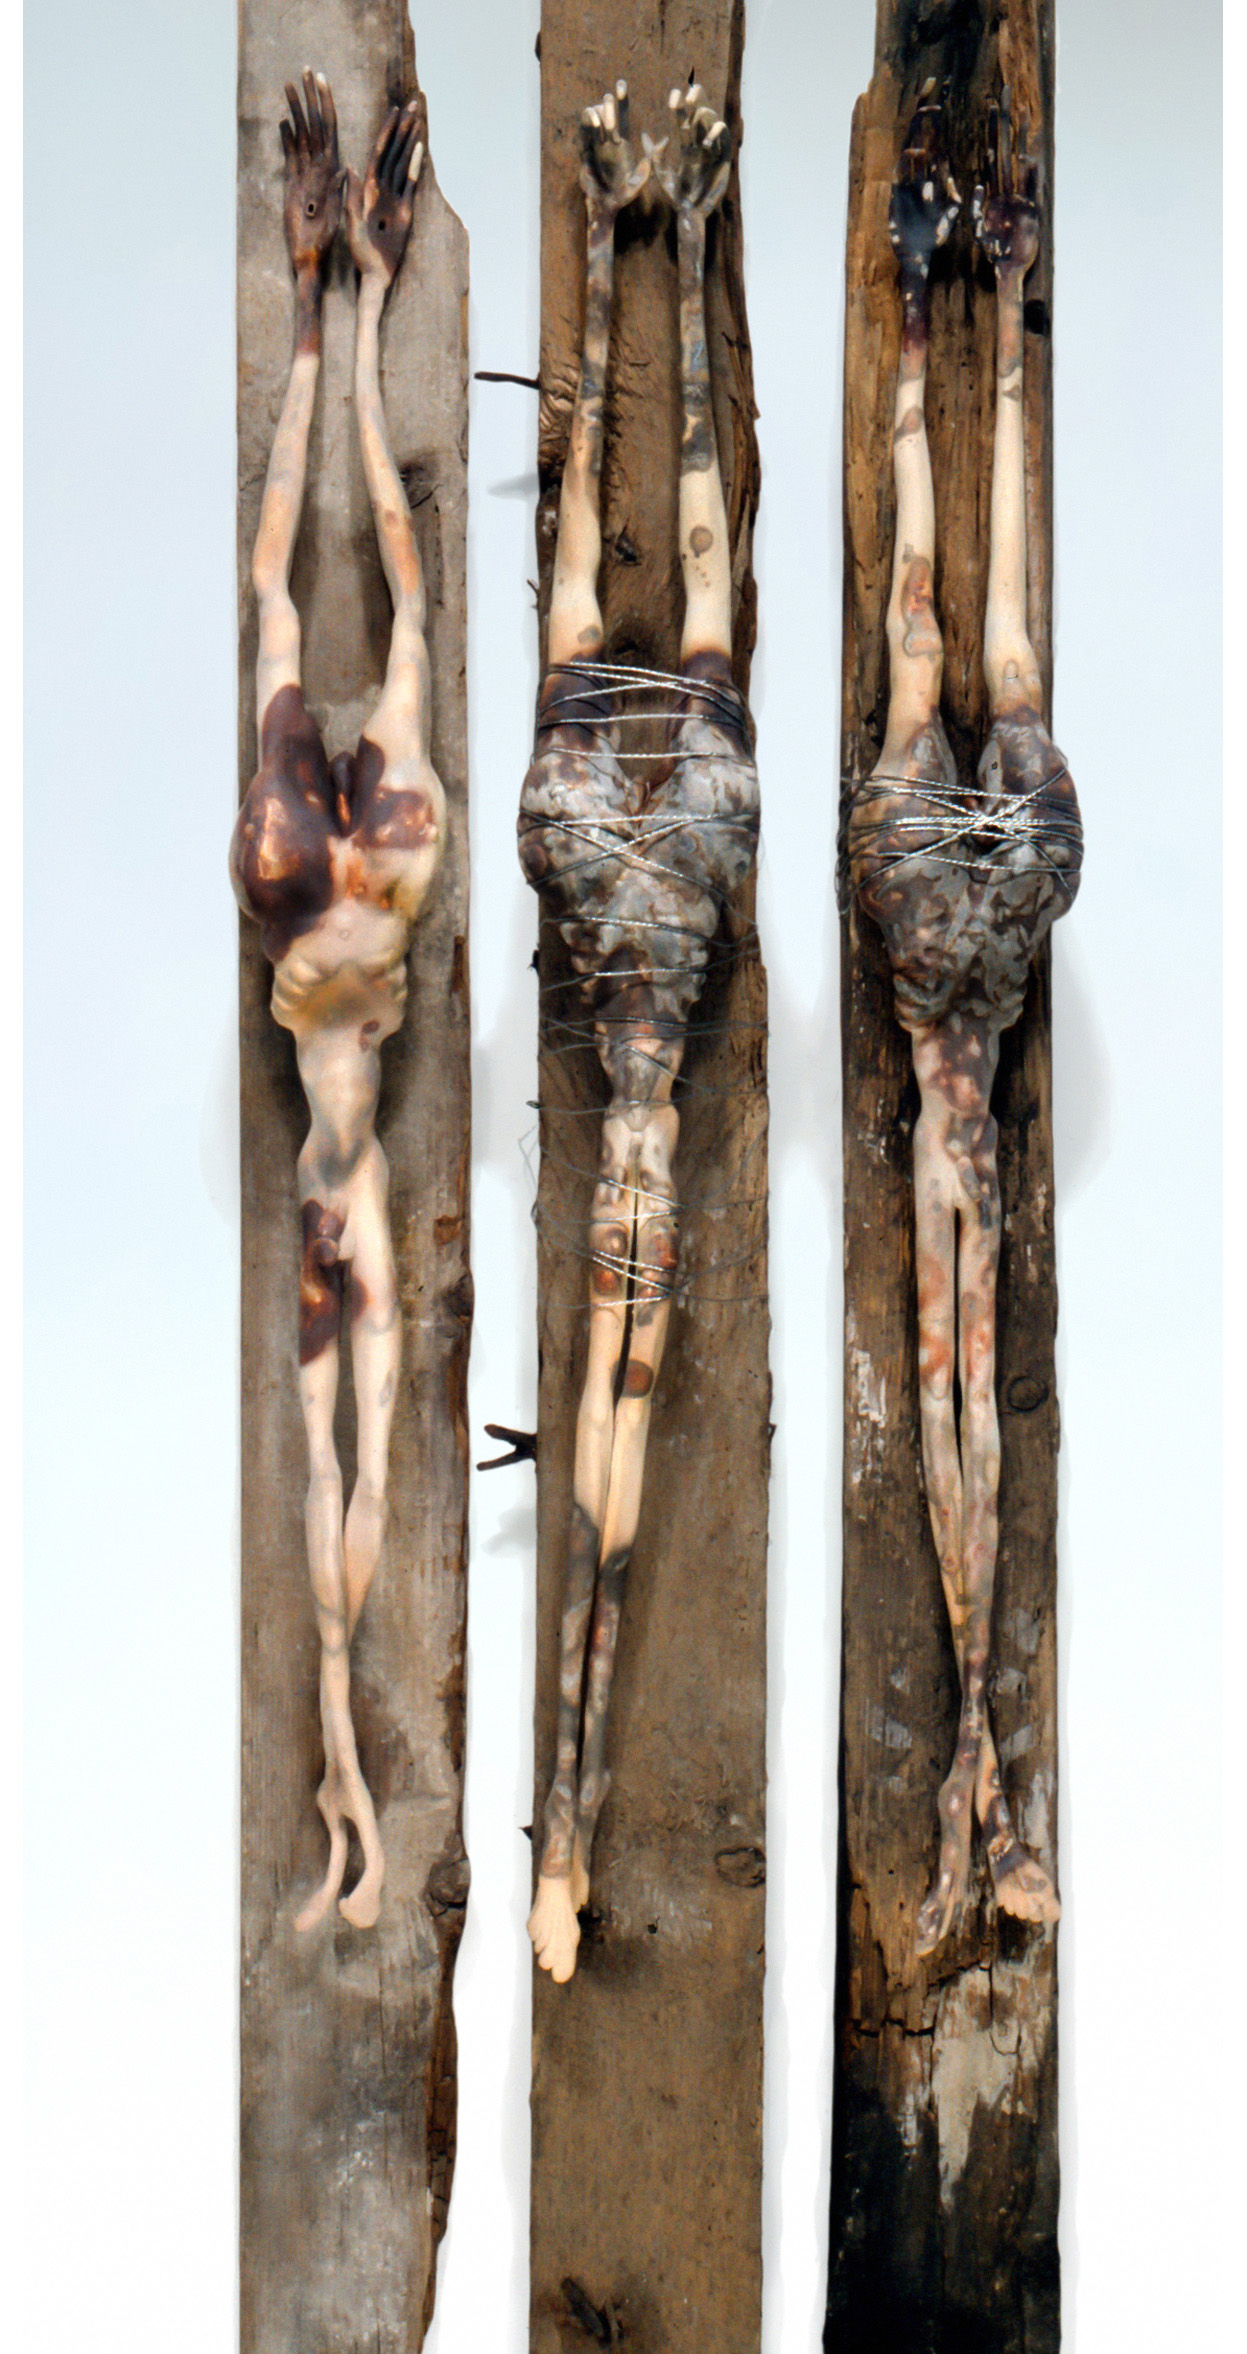 'Golgotha'. Earthenware Terra Sigillata, wood, wire. 1993